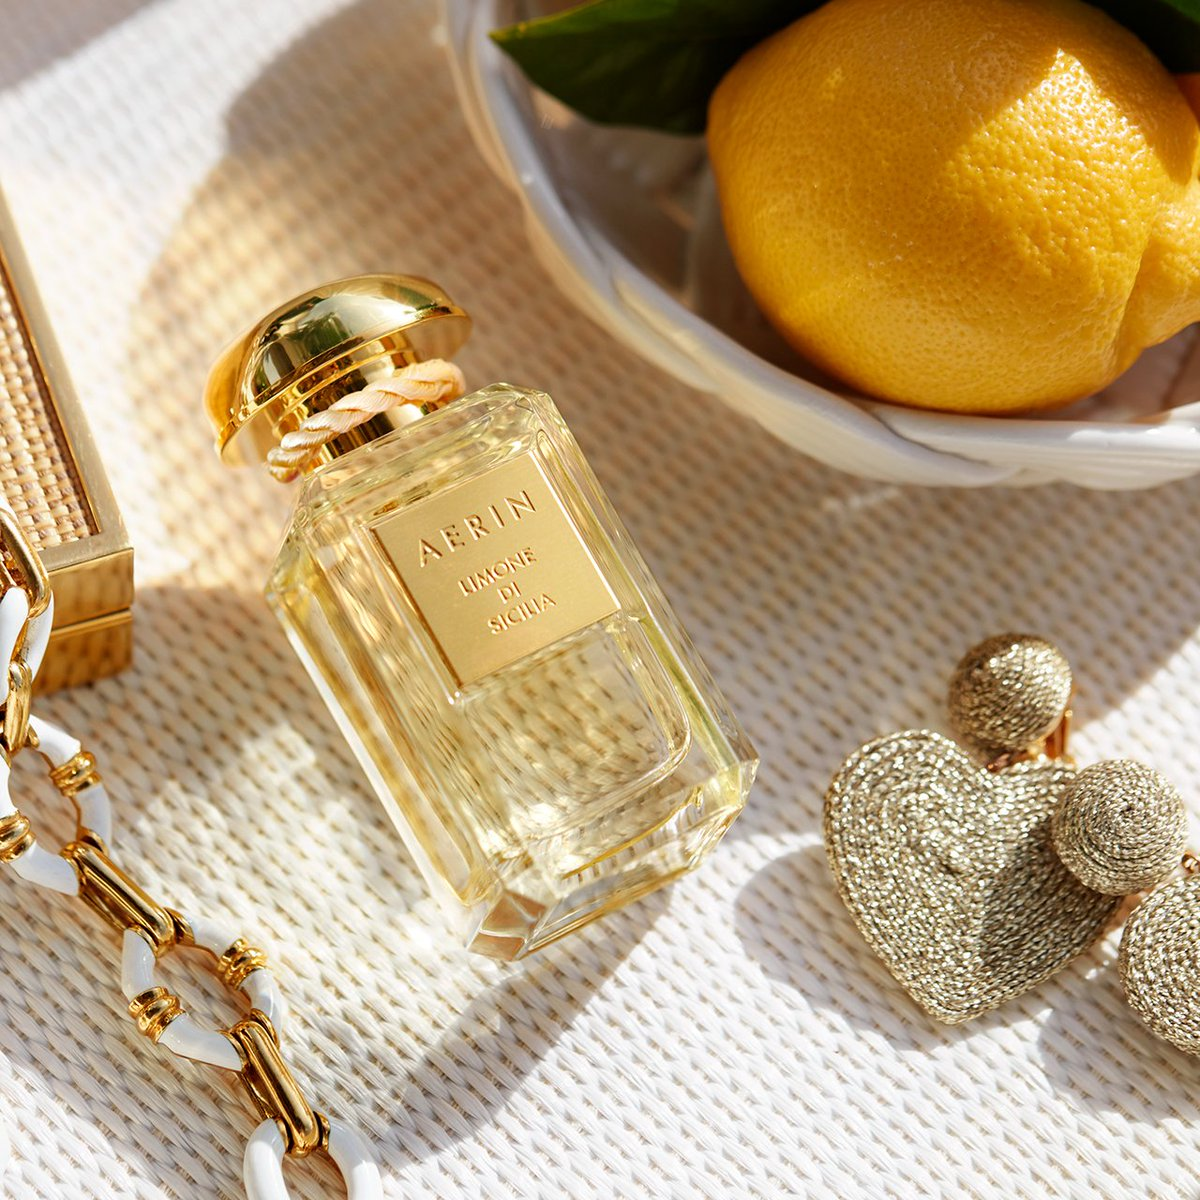 Walk in the lemon groves of Sicily with @AERIN Limone Di Sicilia - NEW citrus floral blend. #AERINBeauty #fragrance #citrusfragrance bit.ly/2yK36Qn